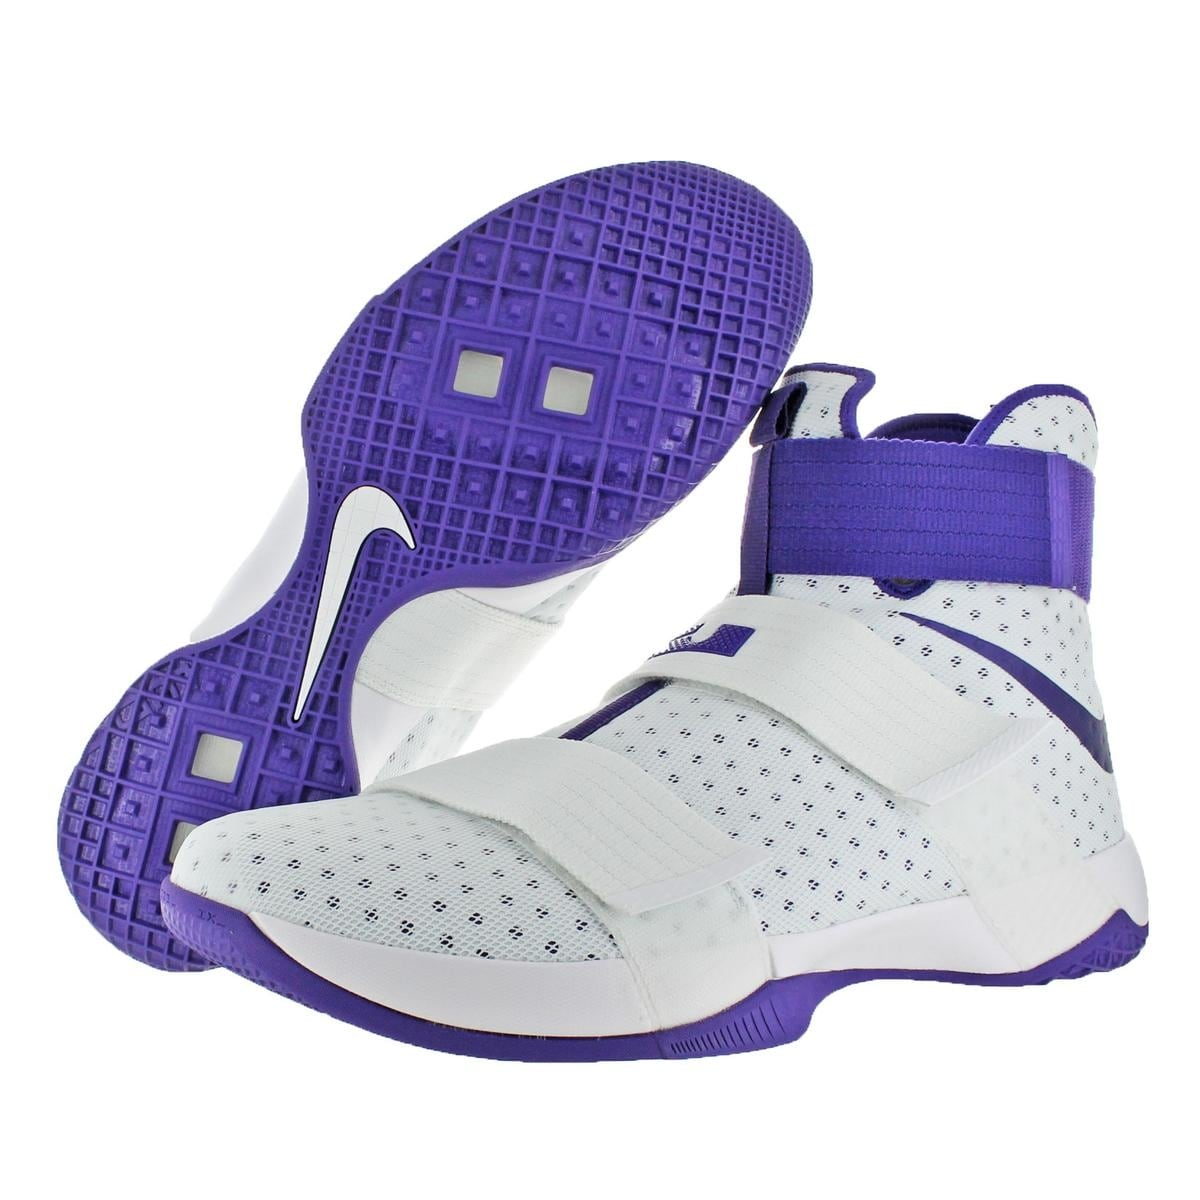 aaa44f80348e Shop Nike LeBron Soldier 10 Men s Mesh High-Top Basketball Shoes White Size  18 - 18 medium (d) - Free Shipping Today - Overstock - 22132820